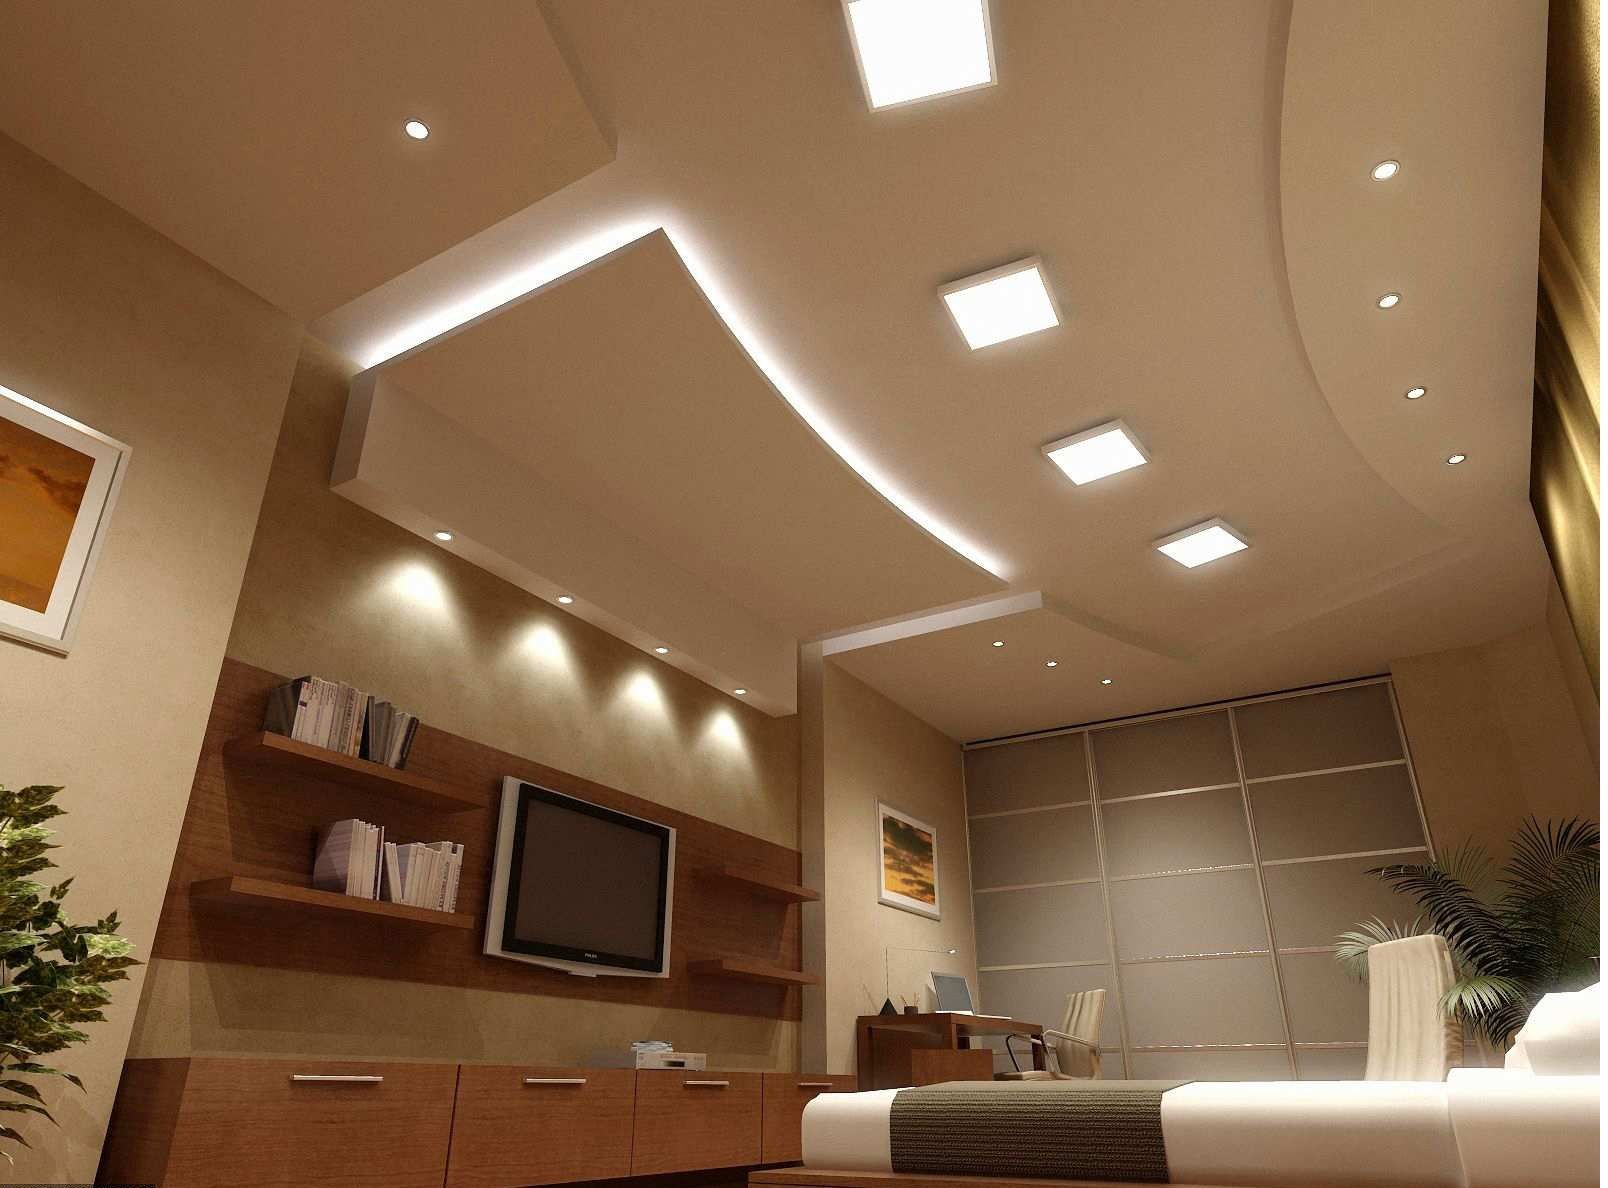 Ceiling Design Ideas stunning ceiling design hgtv Ceiling Lighting